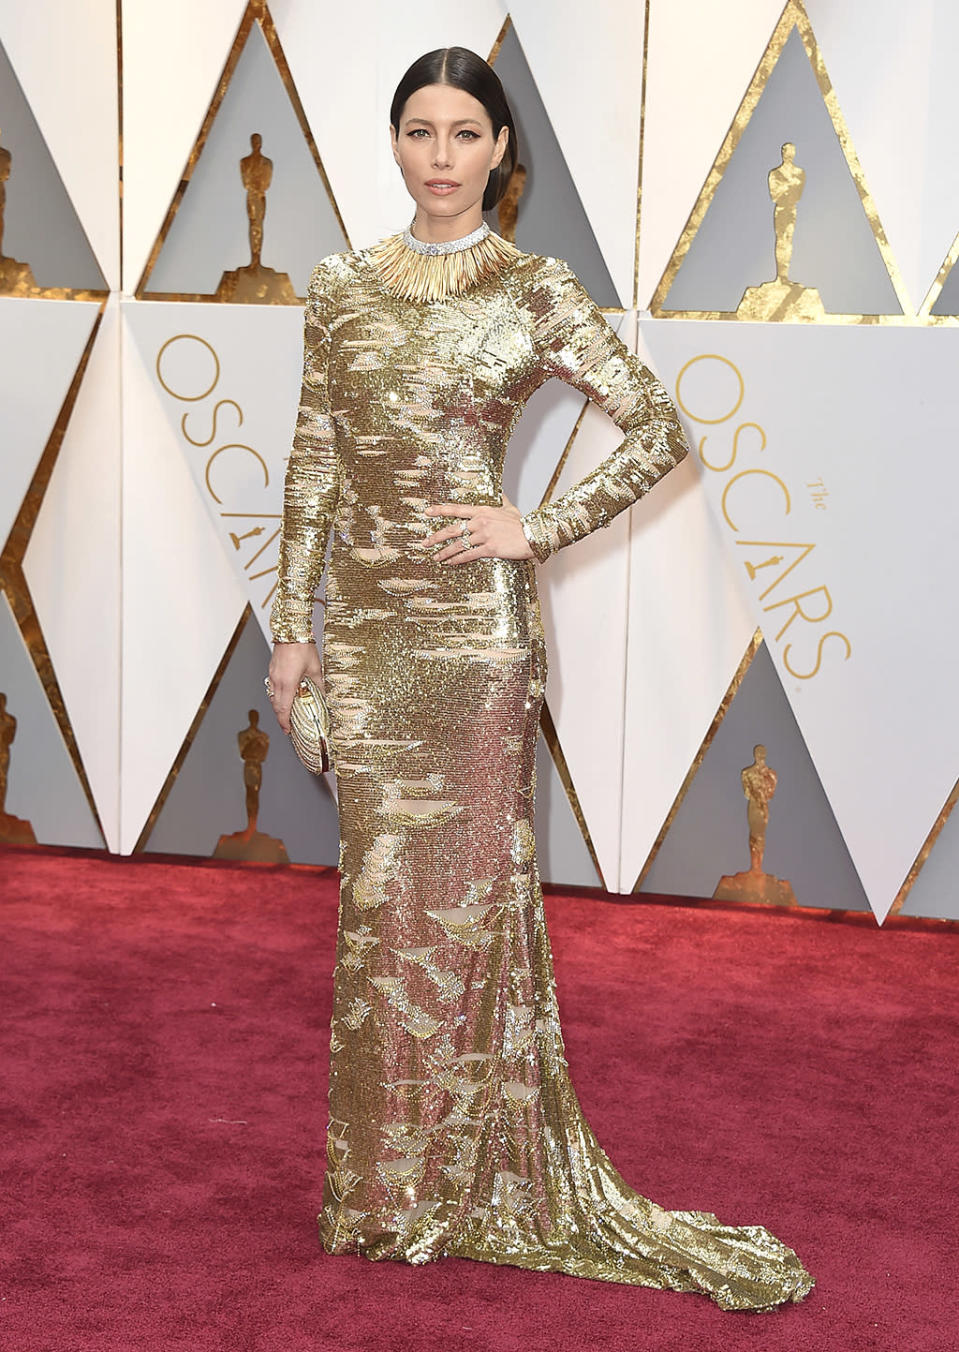 """<p>Jessica Biel steals the (pre-) show in this silver-and-gold KaufmanFranco sparkler with a Tiffany necklace. Or, as her date, her husband Justin Timberlake, remarked: """"I call it perfection, baby.""""<br> (Photo by Jordan Strauss/Invision/AP)<br><br><a href=""""https://www.yahoo.com/style/oscars-2017-vote-for-the-best-and-worst-dressed-225105125.html"""" data-ylk=""""slk:Go here to vote for best and worst dressed.;outcm:mb_qualified_link;_E:mb_qualified_link;ct:story;"""" class=""""link rapid-noclick-resp yahoo-link"""">Go here to vote for best and worst dressed.</a> </p>"""